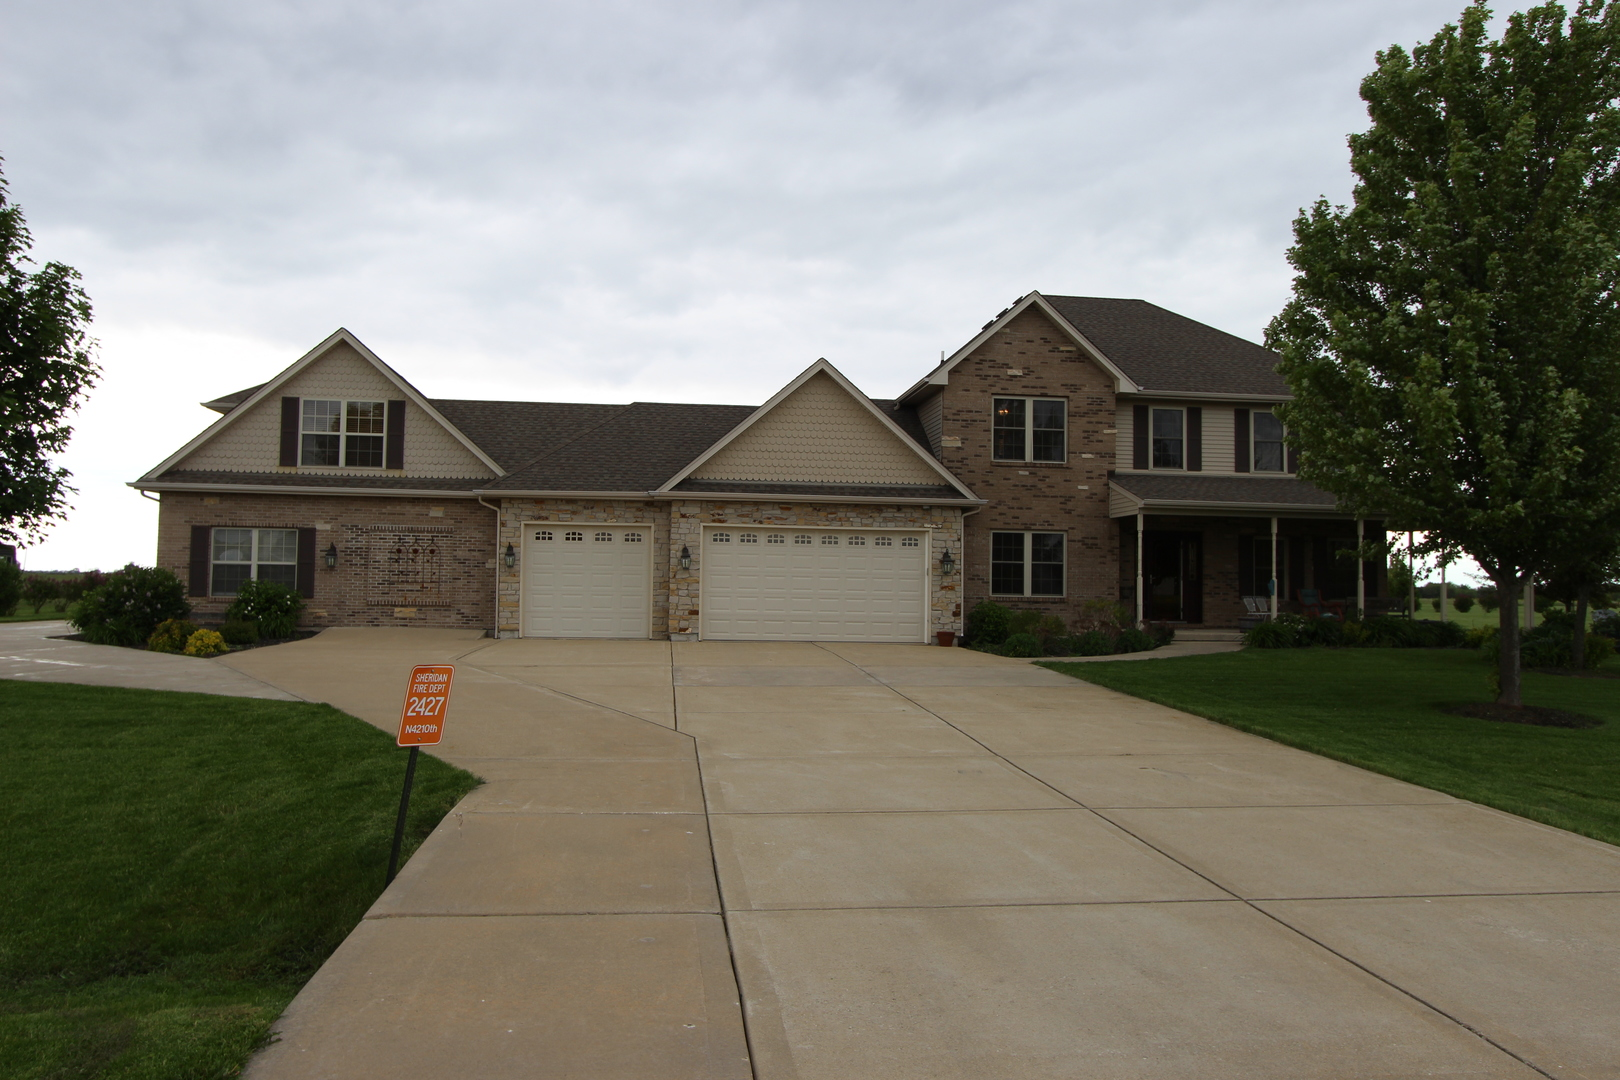 2427 North 4210th, Sheridan, Illinois, 60551